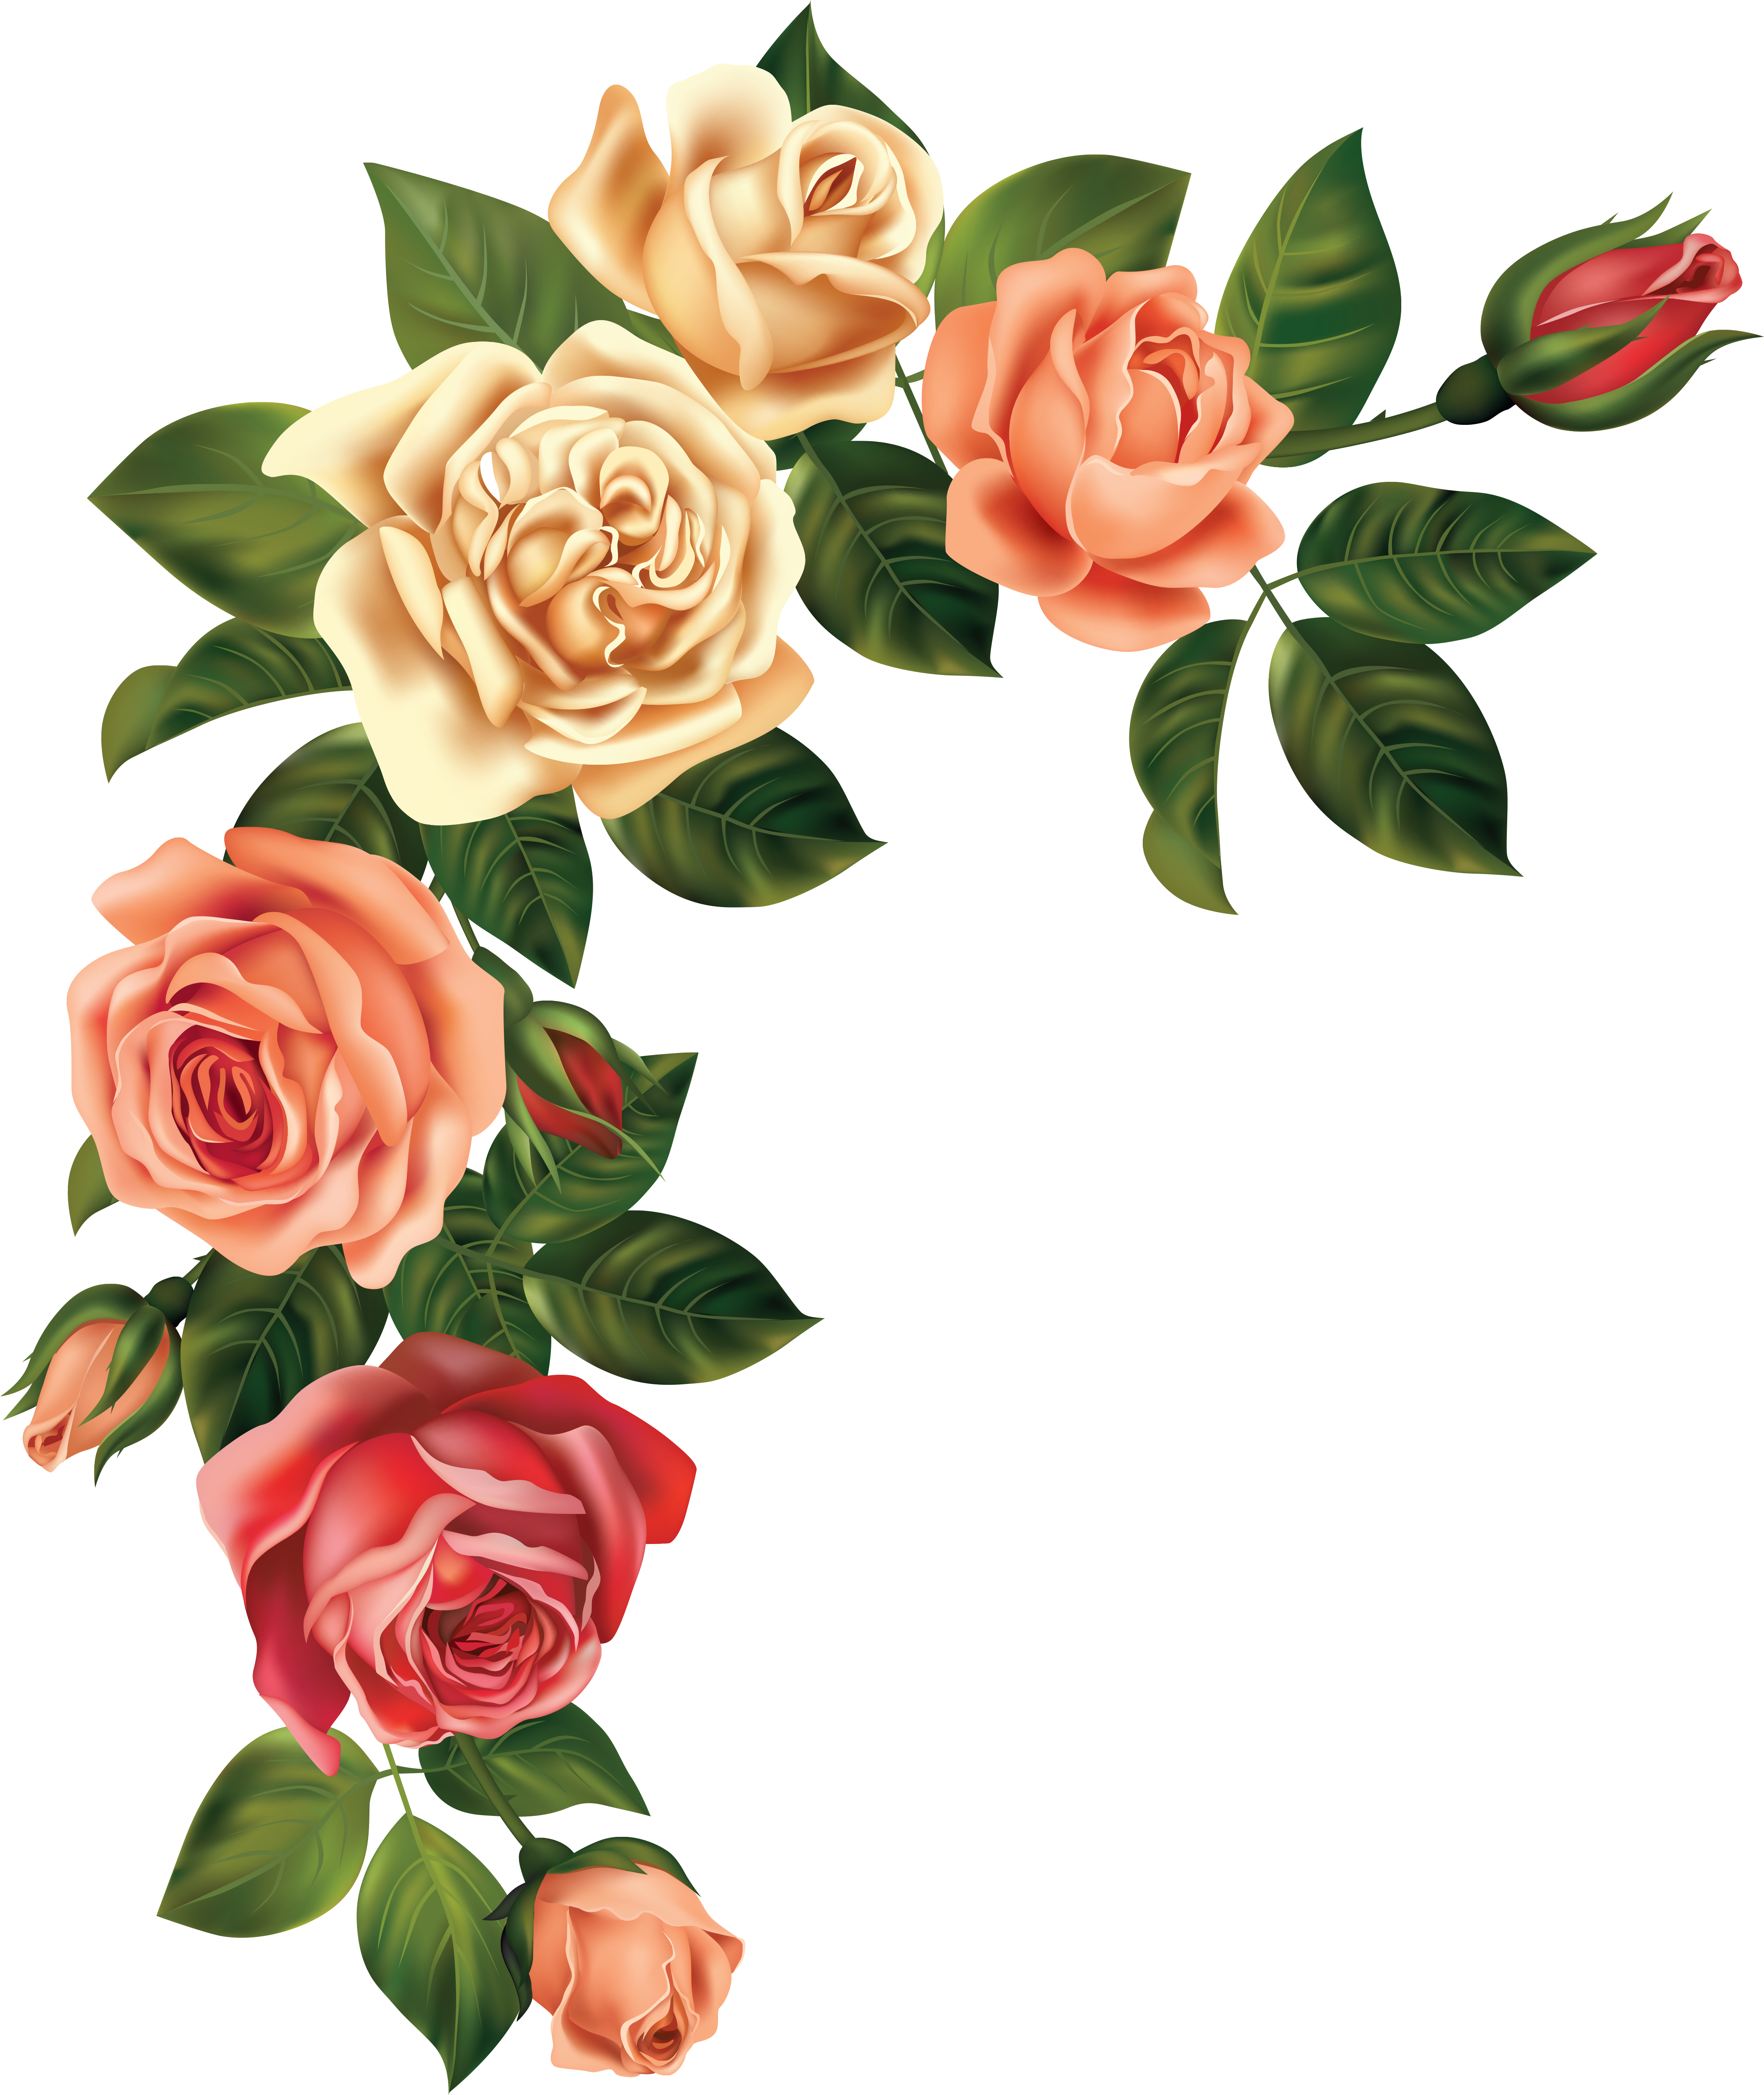 Https img fotki yandex. Clipart rose embroidery